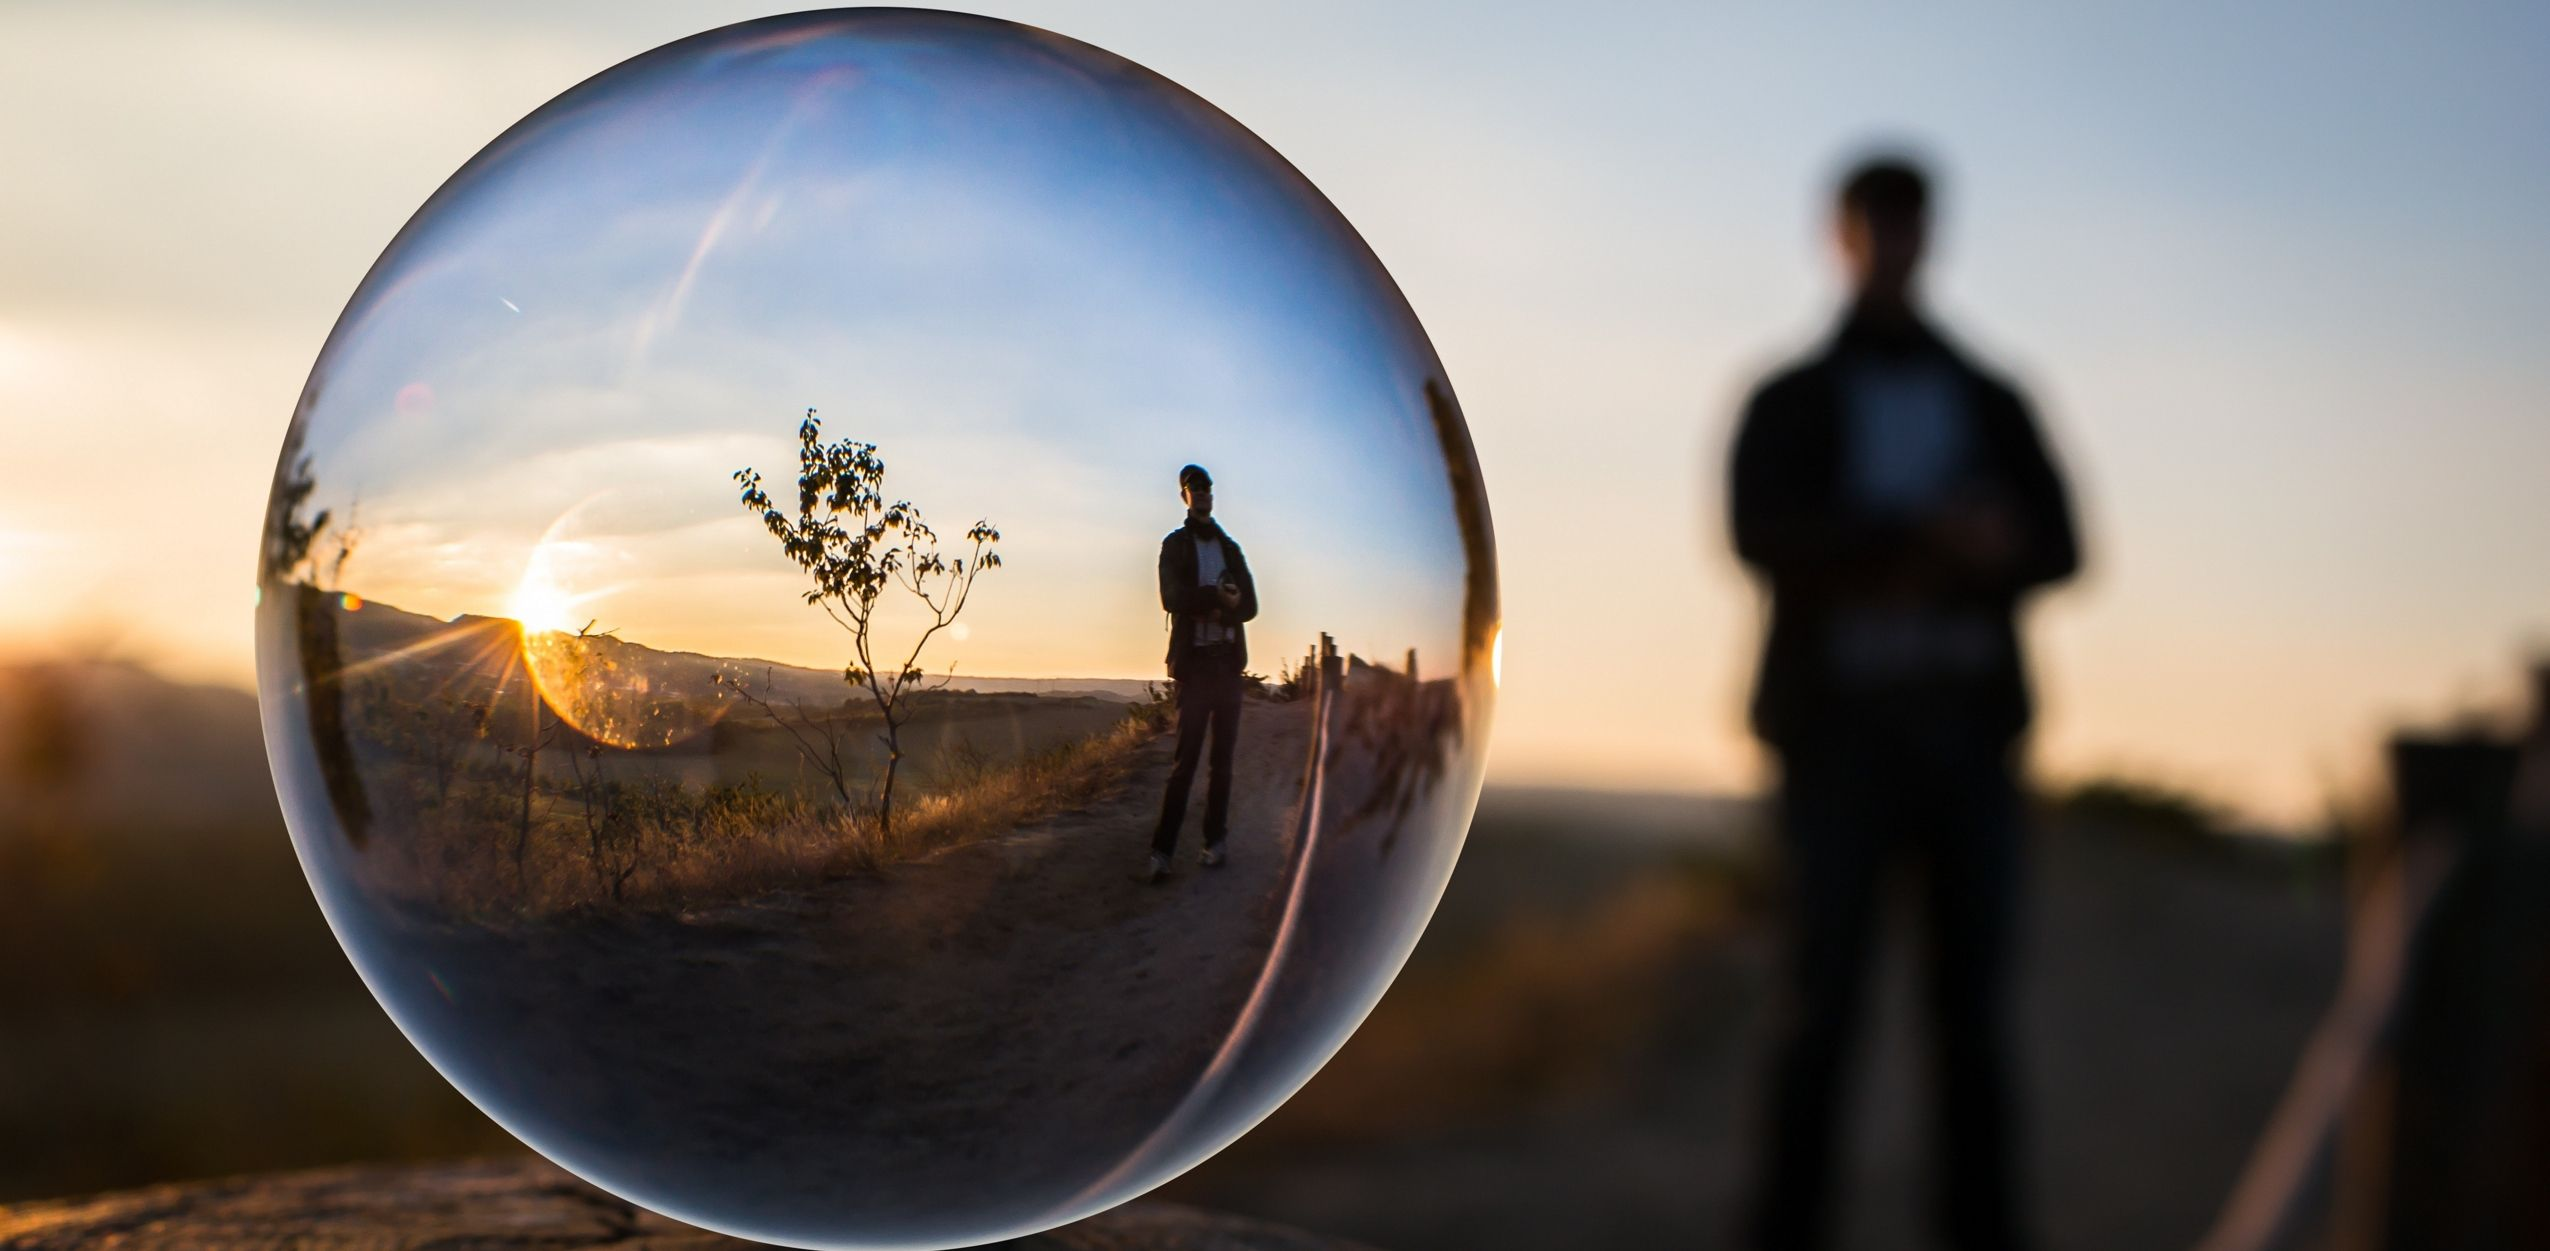 A sunset horizon and a person standing fairly close by, all reflected through a bubble up-close.